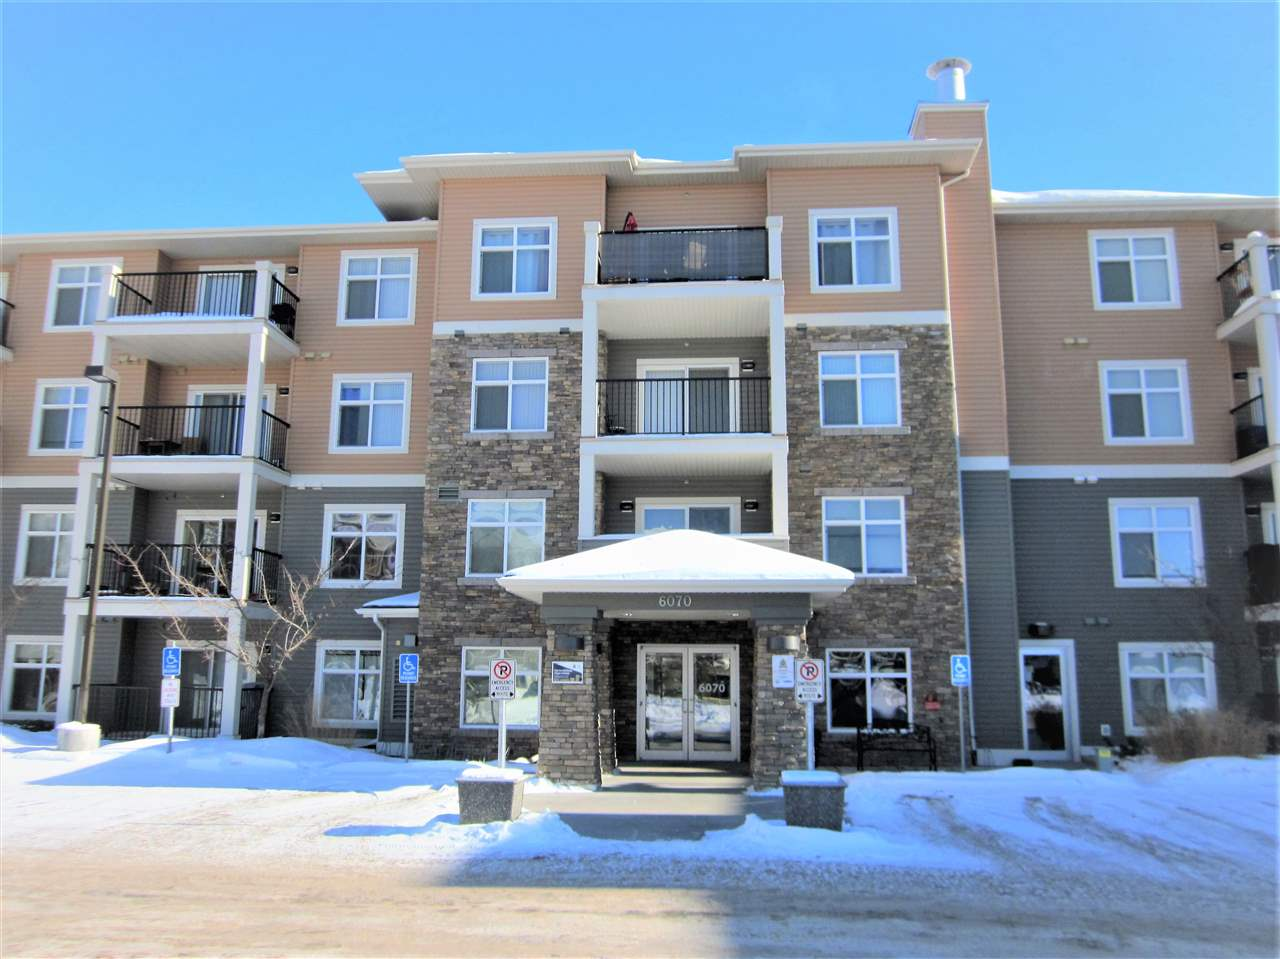 MLS® listing #E4146093 for sale located at 310 6070 SCHONSEE Way